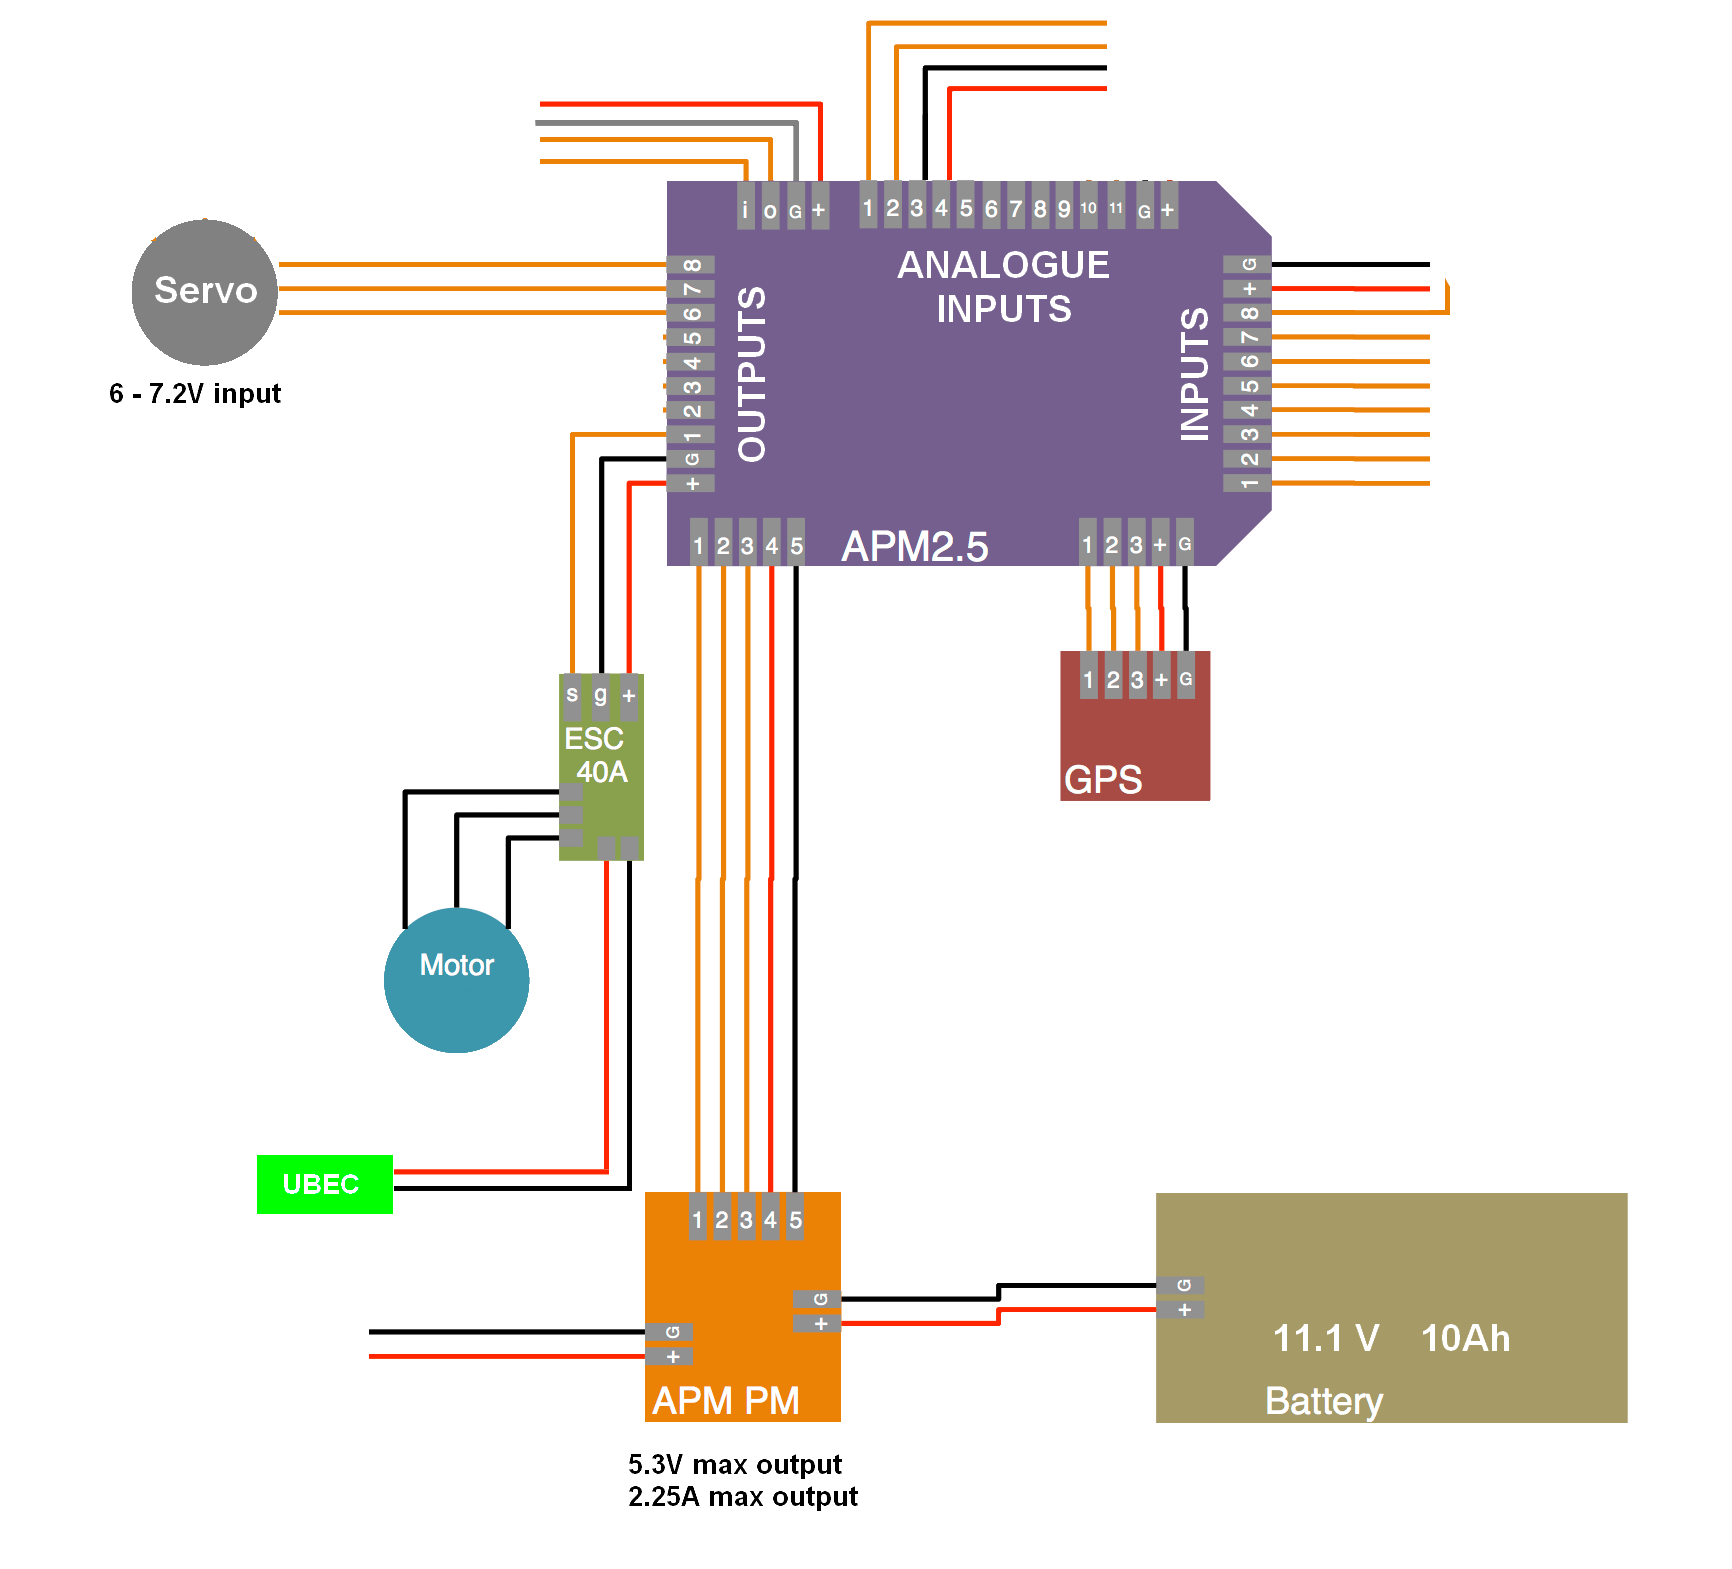 medium resolution of this is my schematic so far